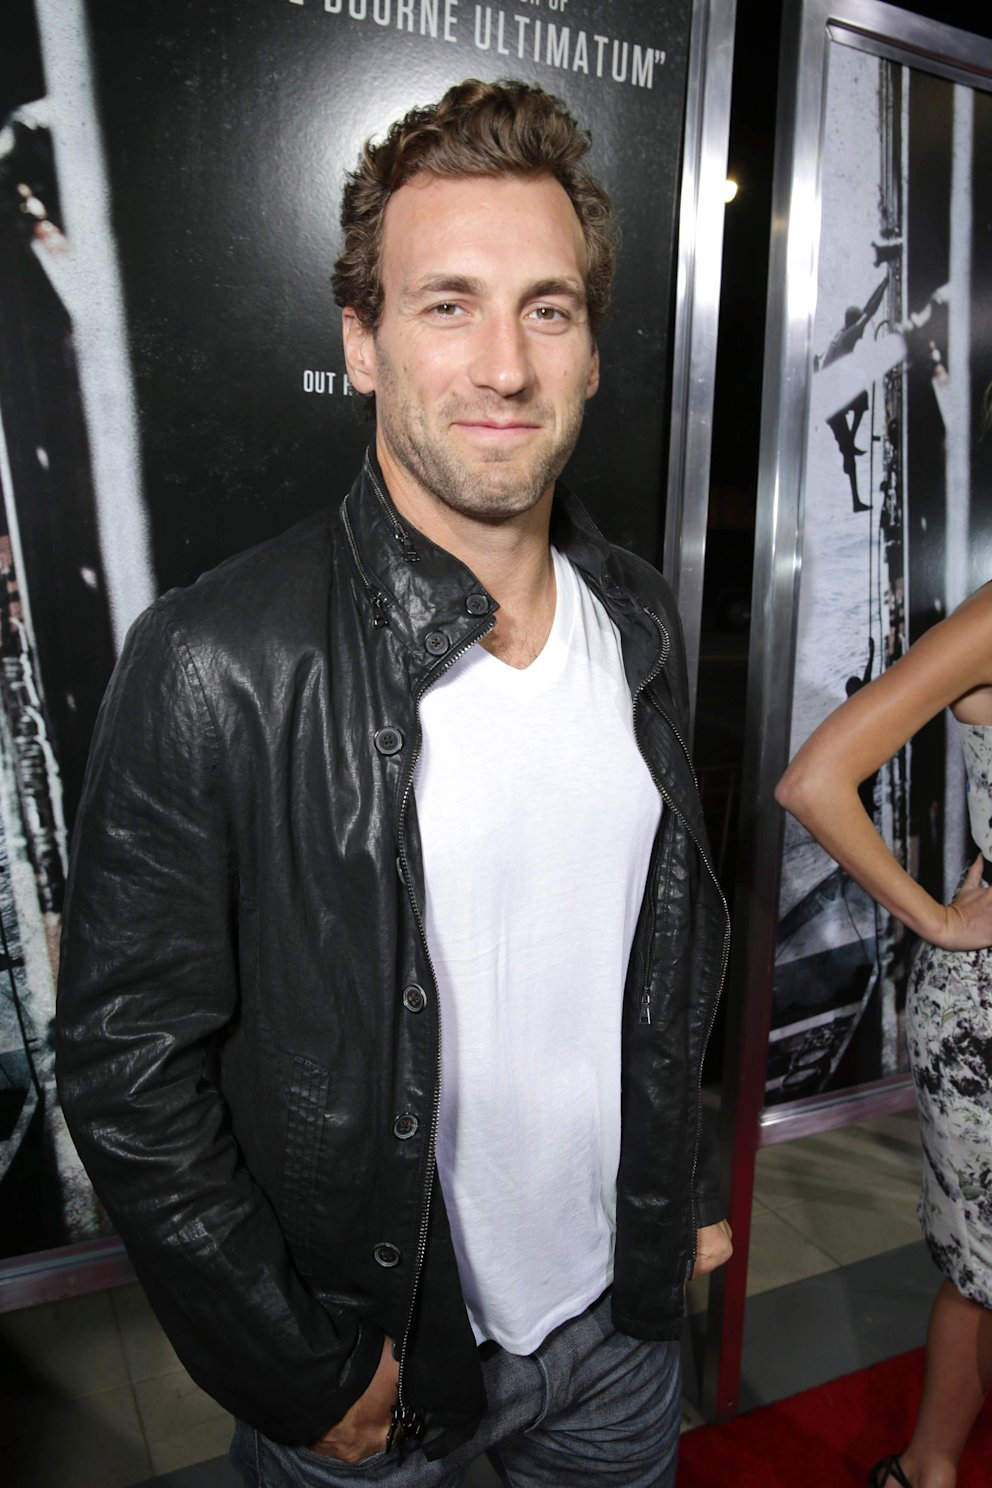 Jarret Stoll arrives at Columbia Pictures screening of 'Captain Phillips', on Monday, Sept. 30, 2013 in Beverly Hills, Calif. (Photo by Eric Charbonneau/Invision for Sony Pictures/AP Images)